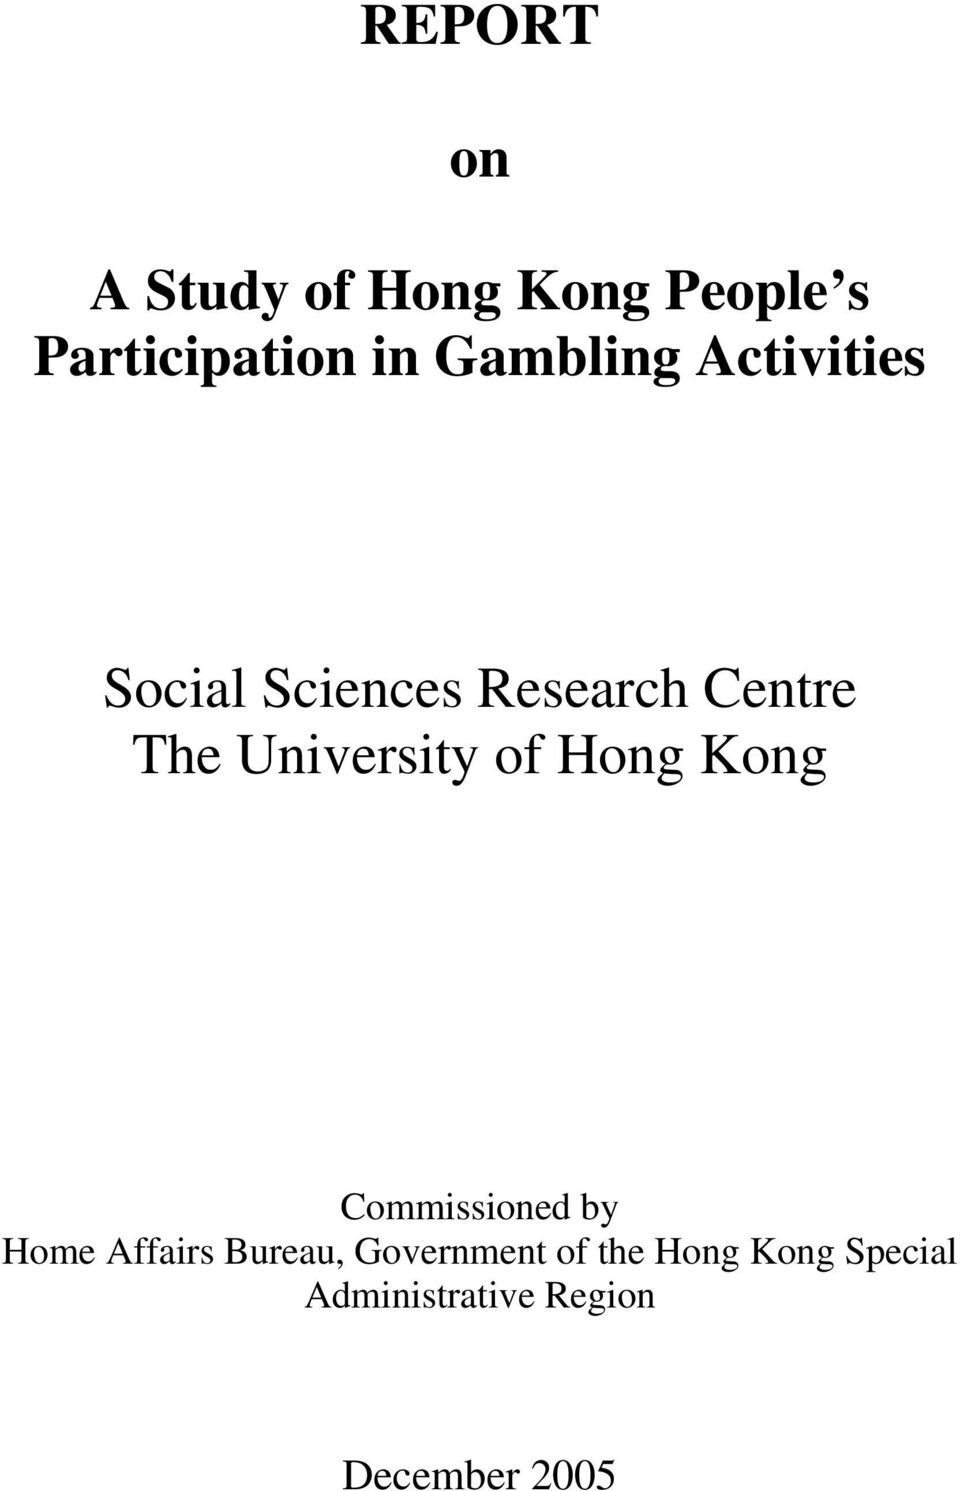 University of Hong Kong Commissioned by Home Affairs Bureau,